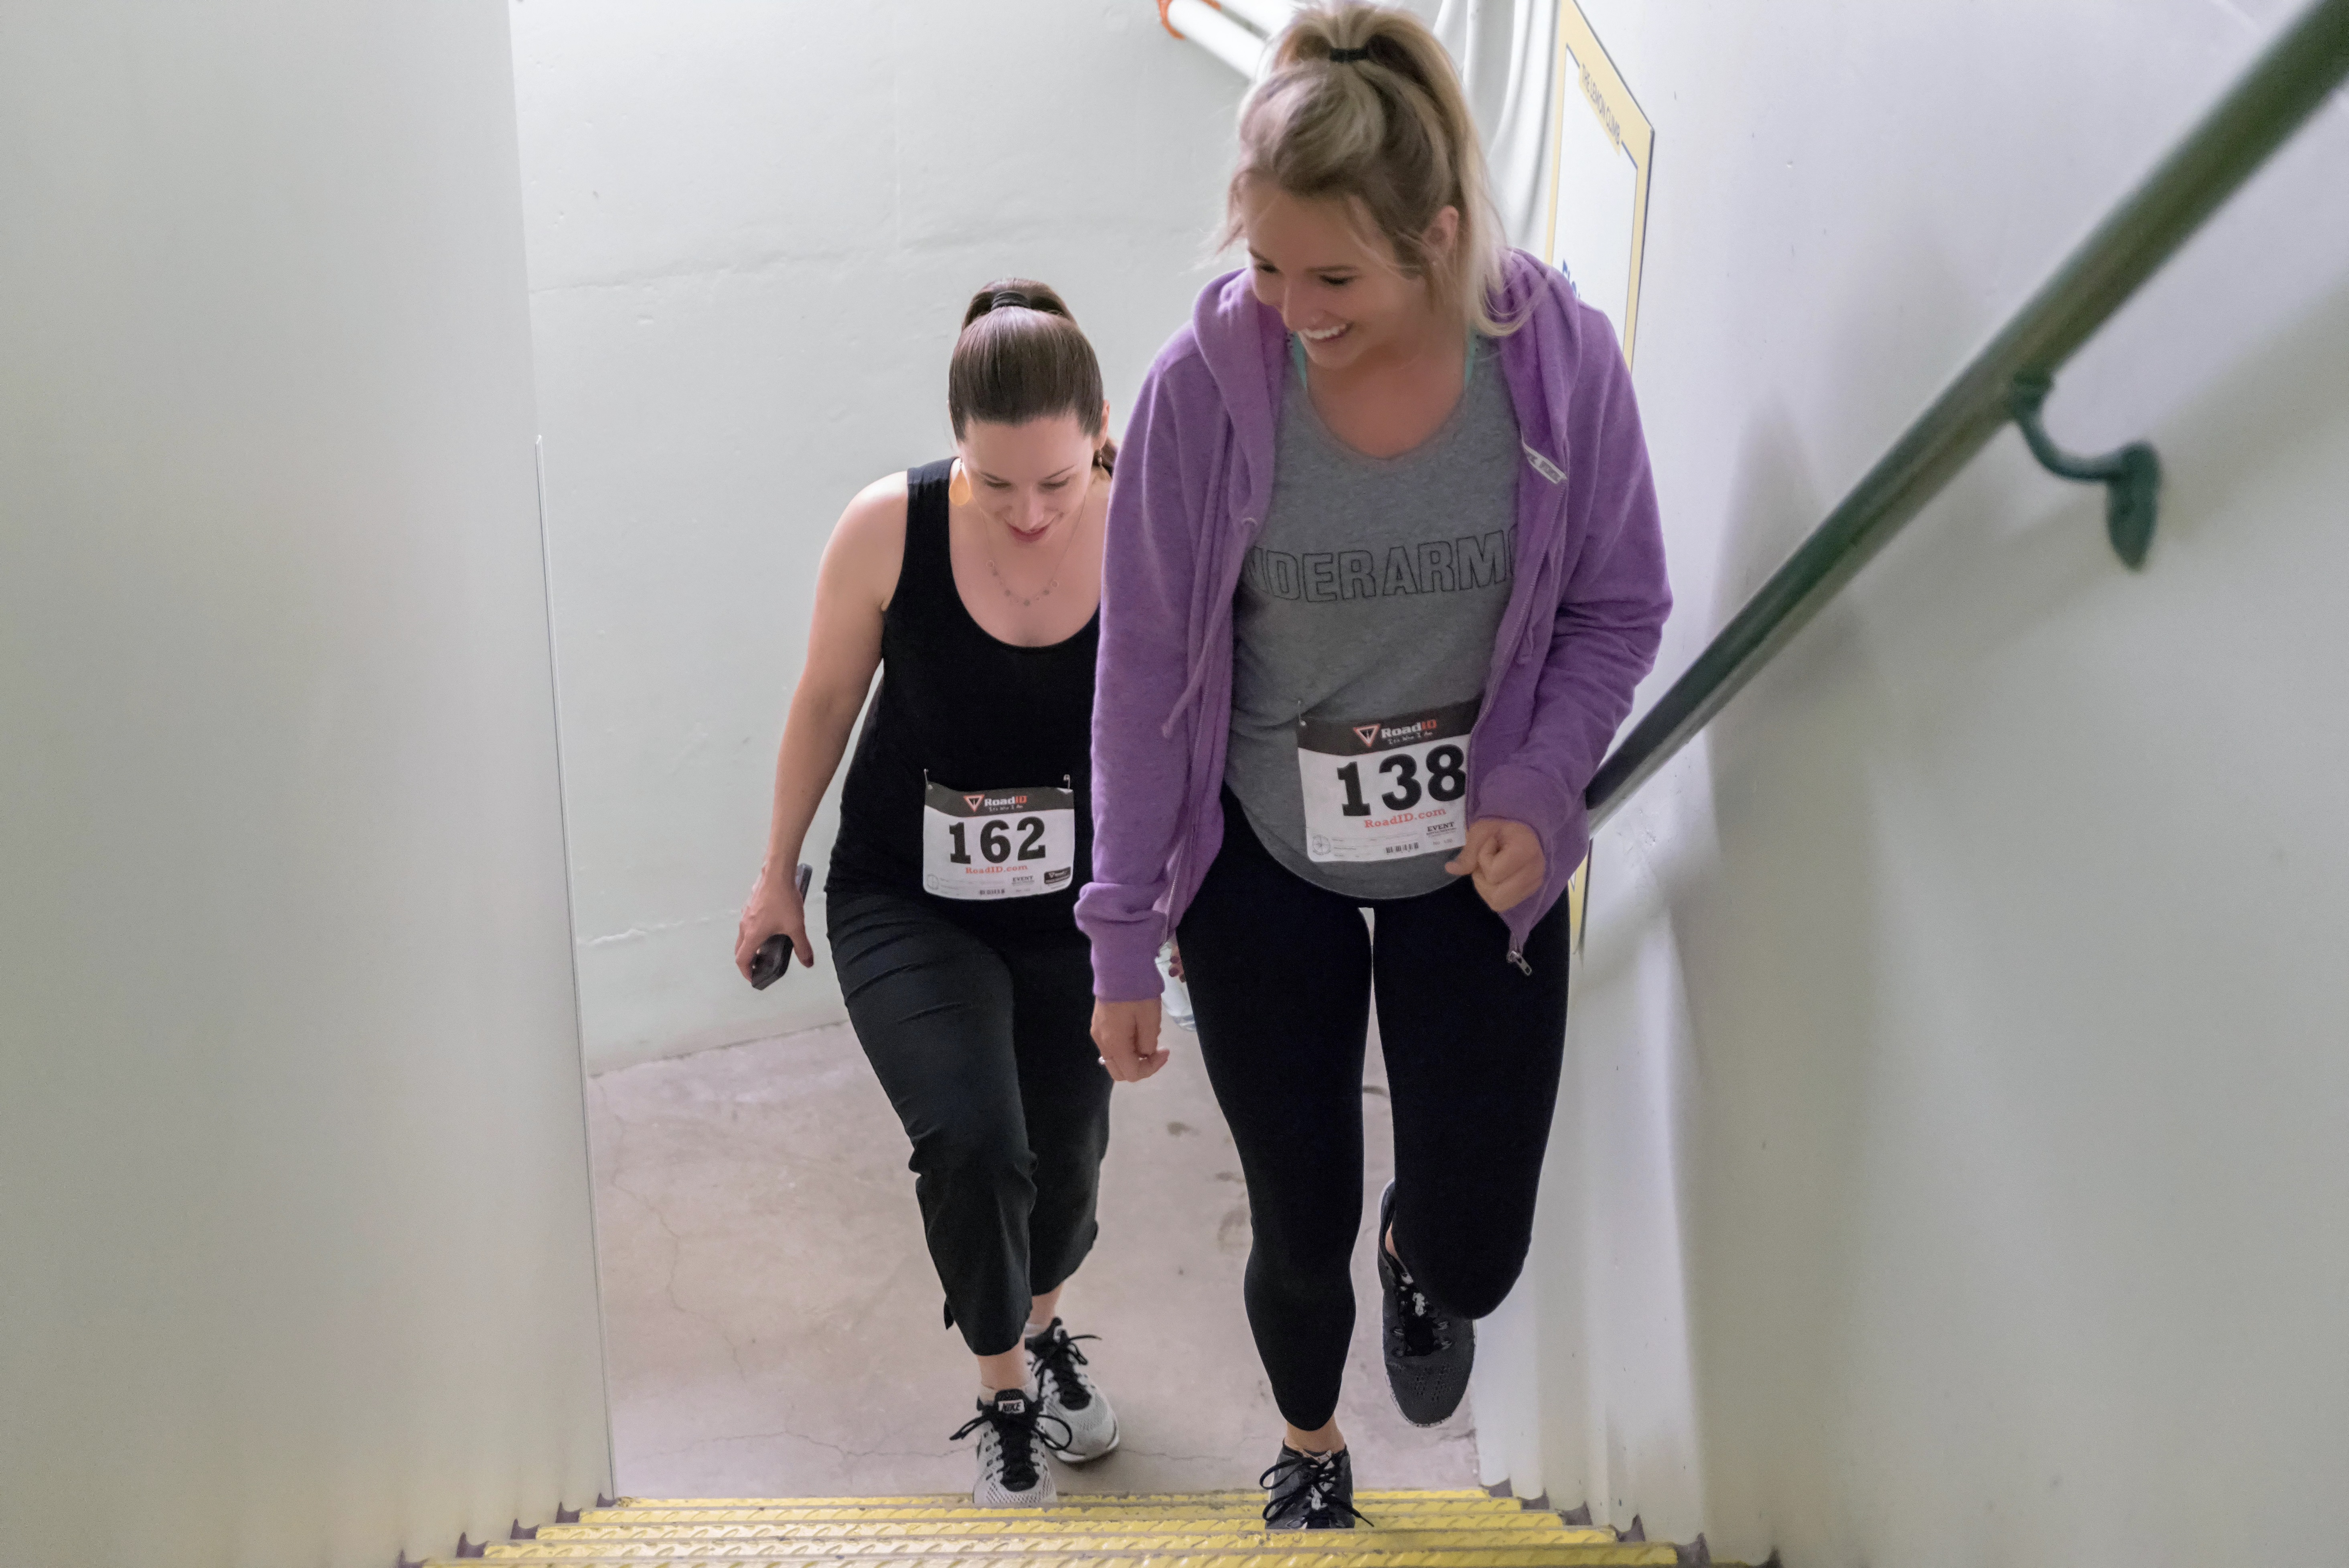 2 people climbing stairs